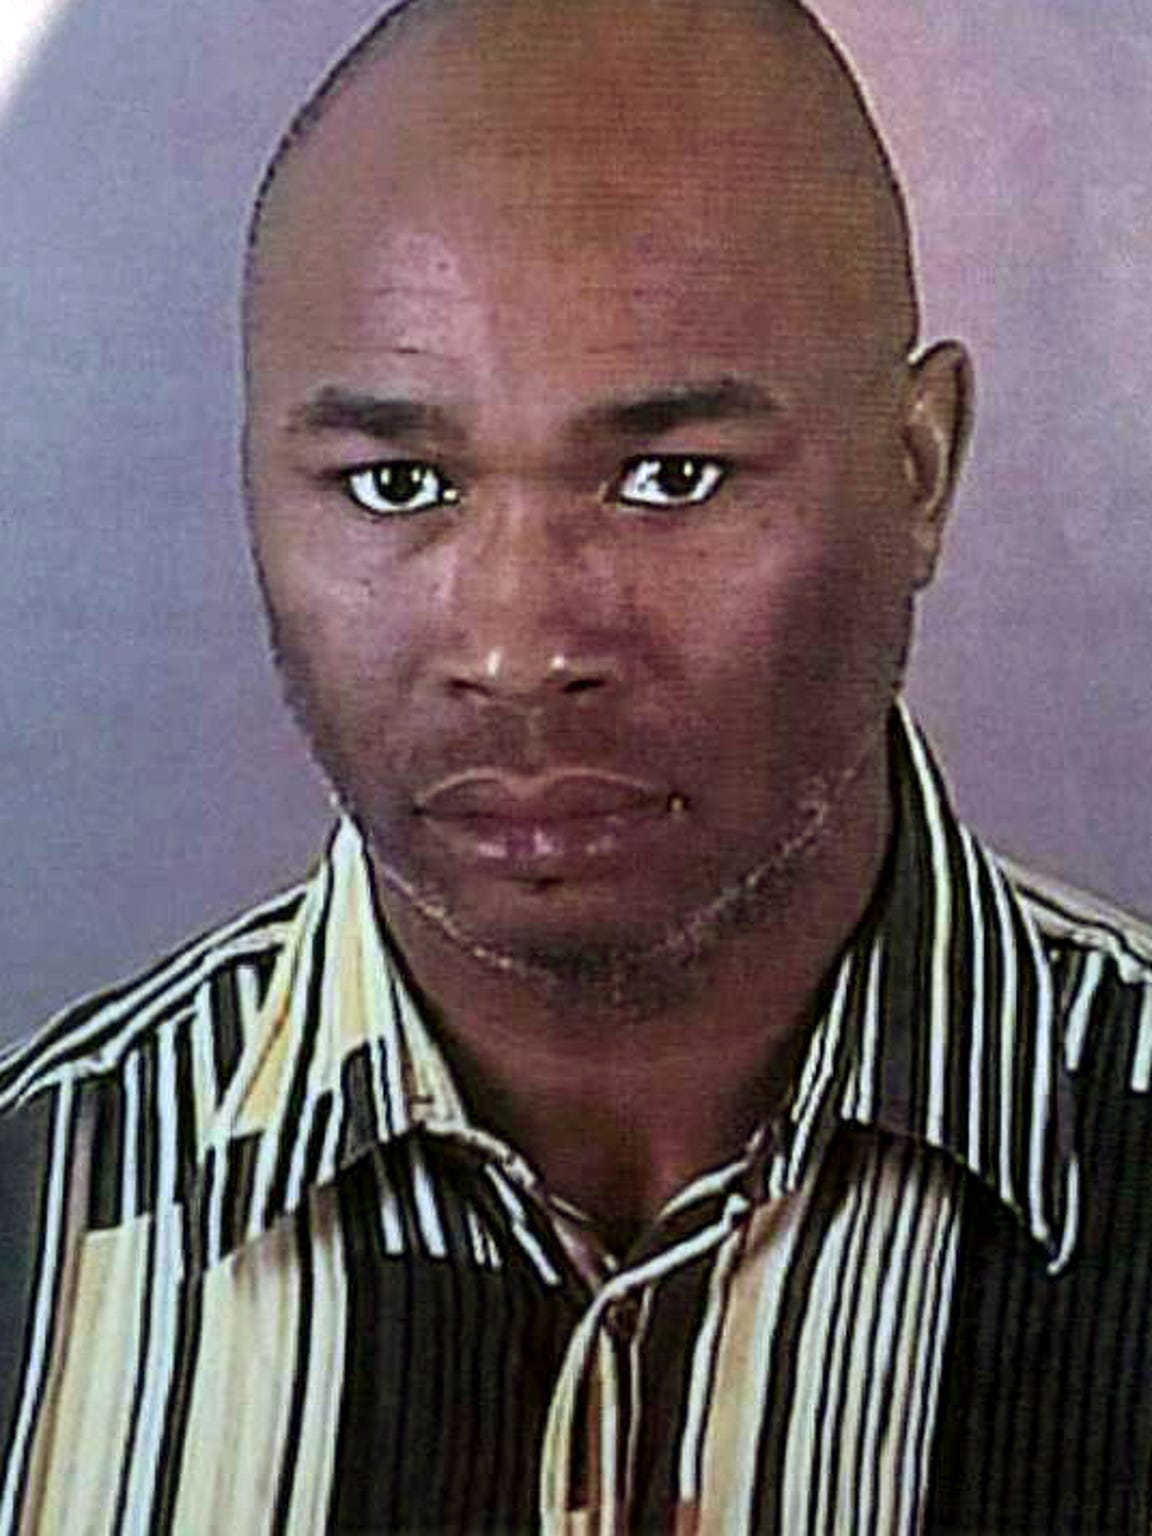 Radcliffe Haughton killed three people, including his estranged wife, and wounded four others at the Azana Salon & Spa in Brookfield in 2012.